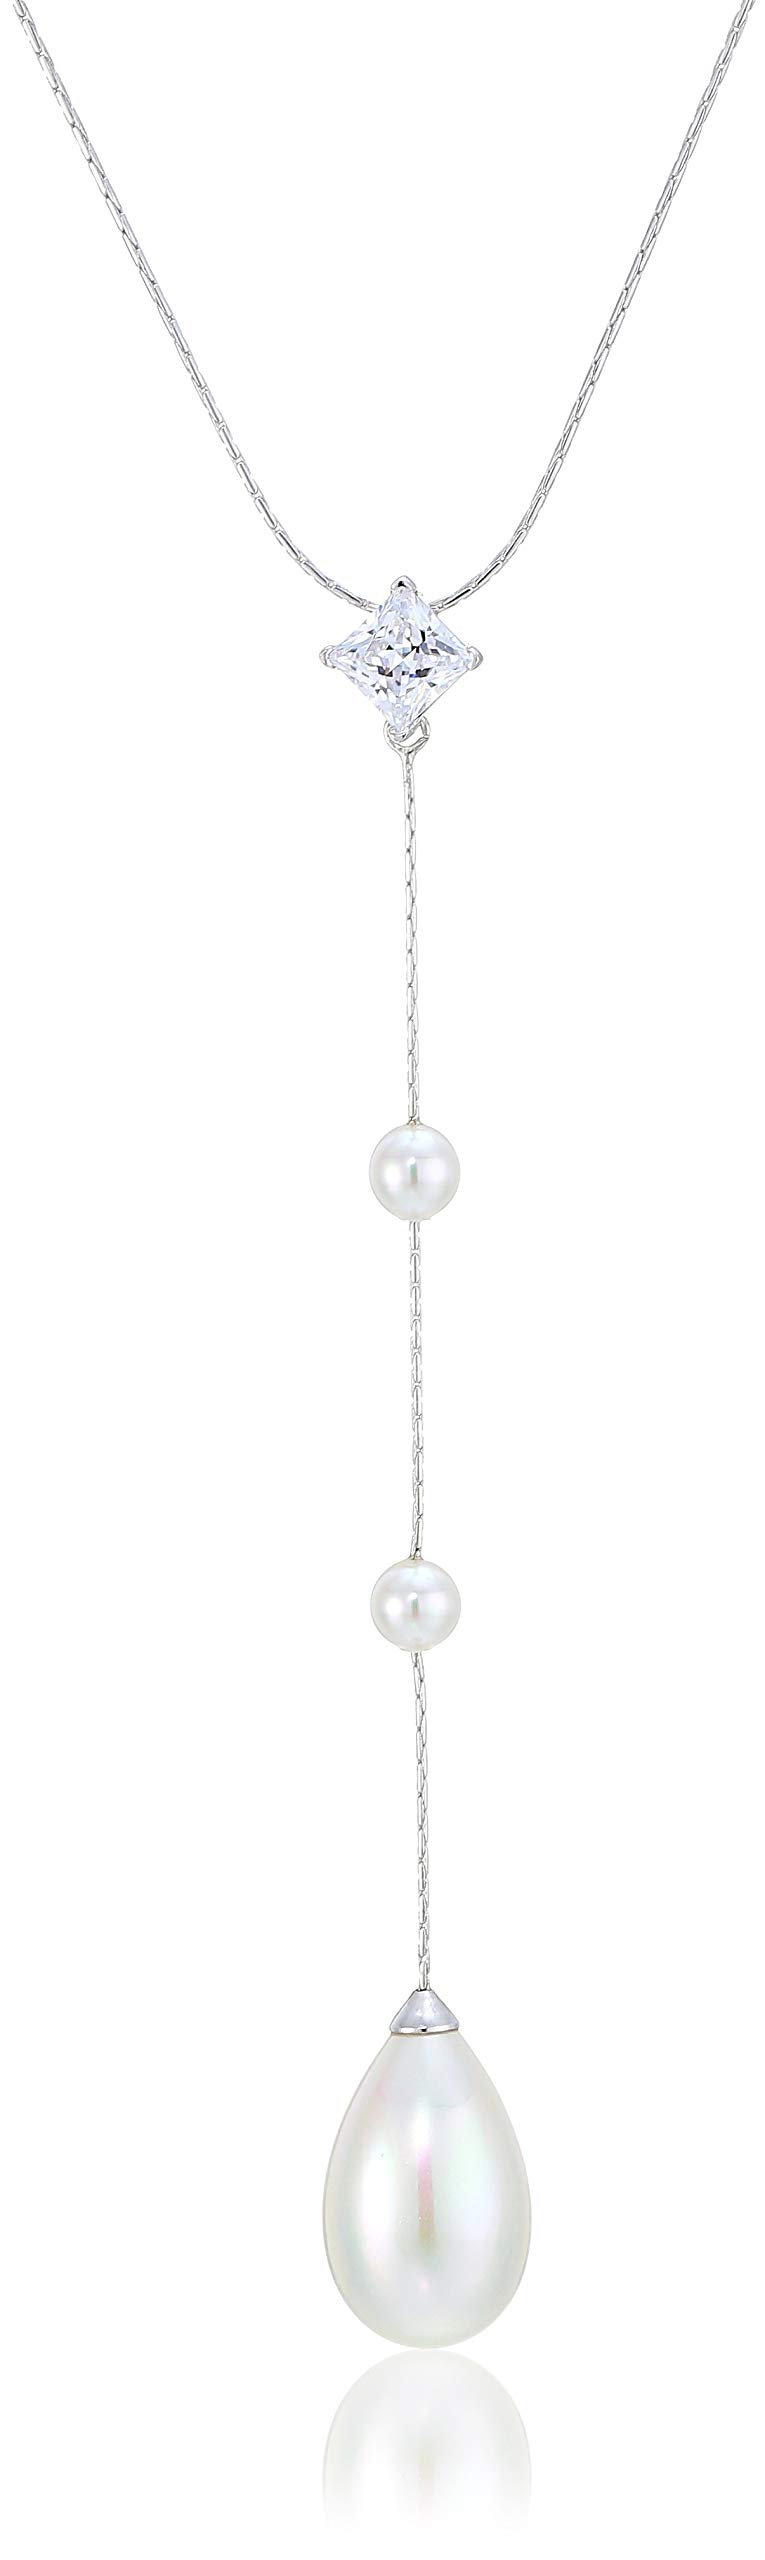 Majorica Rosa 5MM White Round and 12MM Pear Shaped Pearls Pendant with Cz in Sterling Silver Chain 15-17'' by Majorica